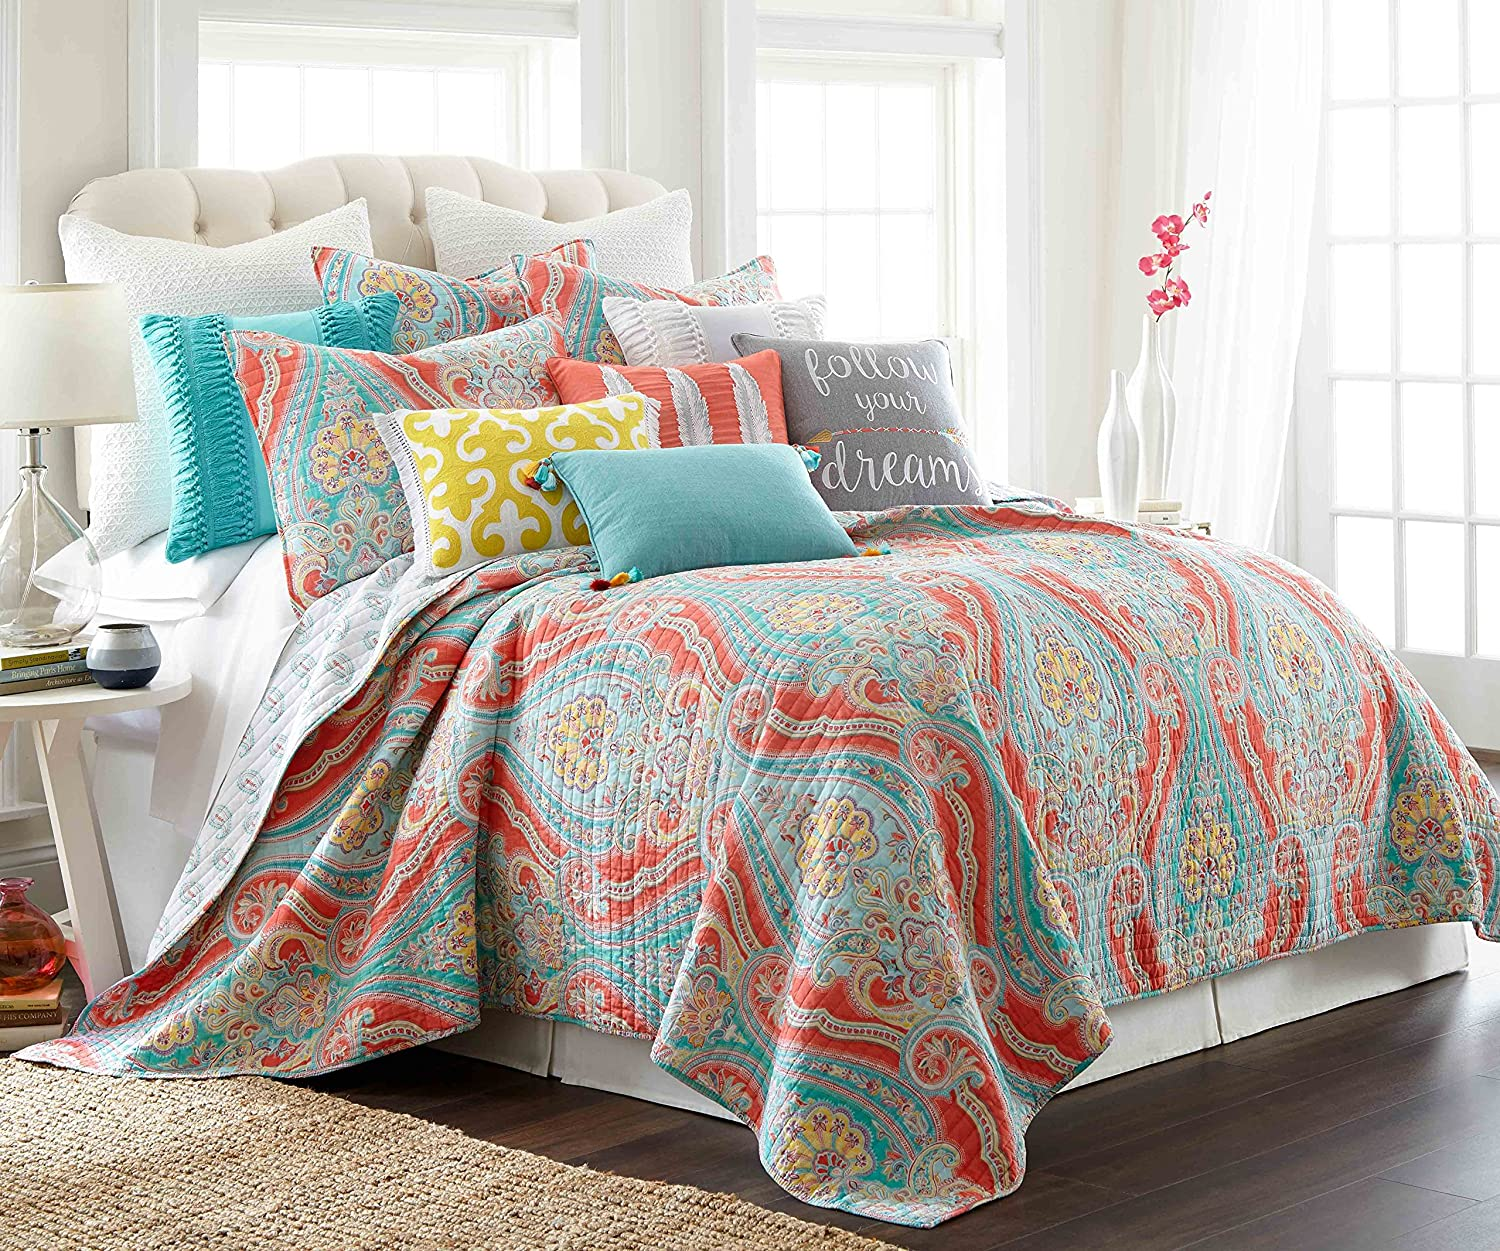 Levtex home Greenwich Multi Quilt Set, Full/Queen, Coral,Teal,Blue